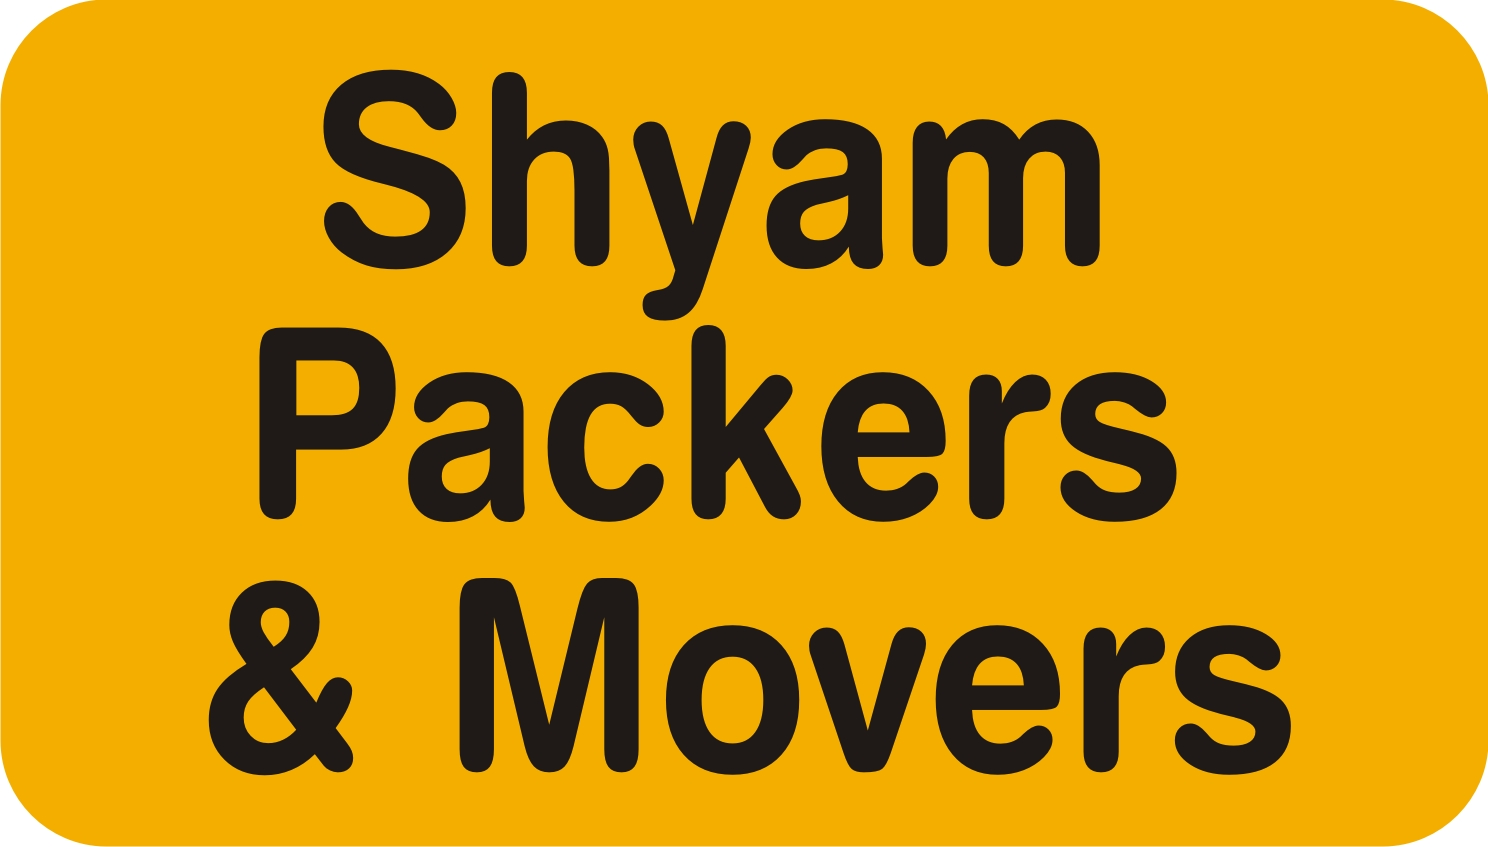 Shyam Packers & Movers